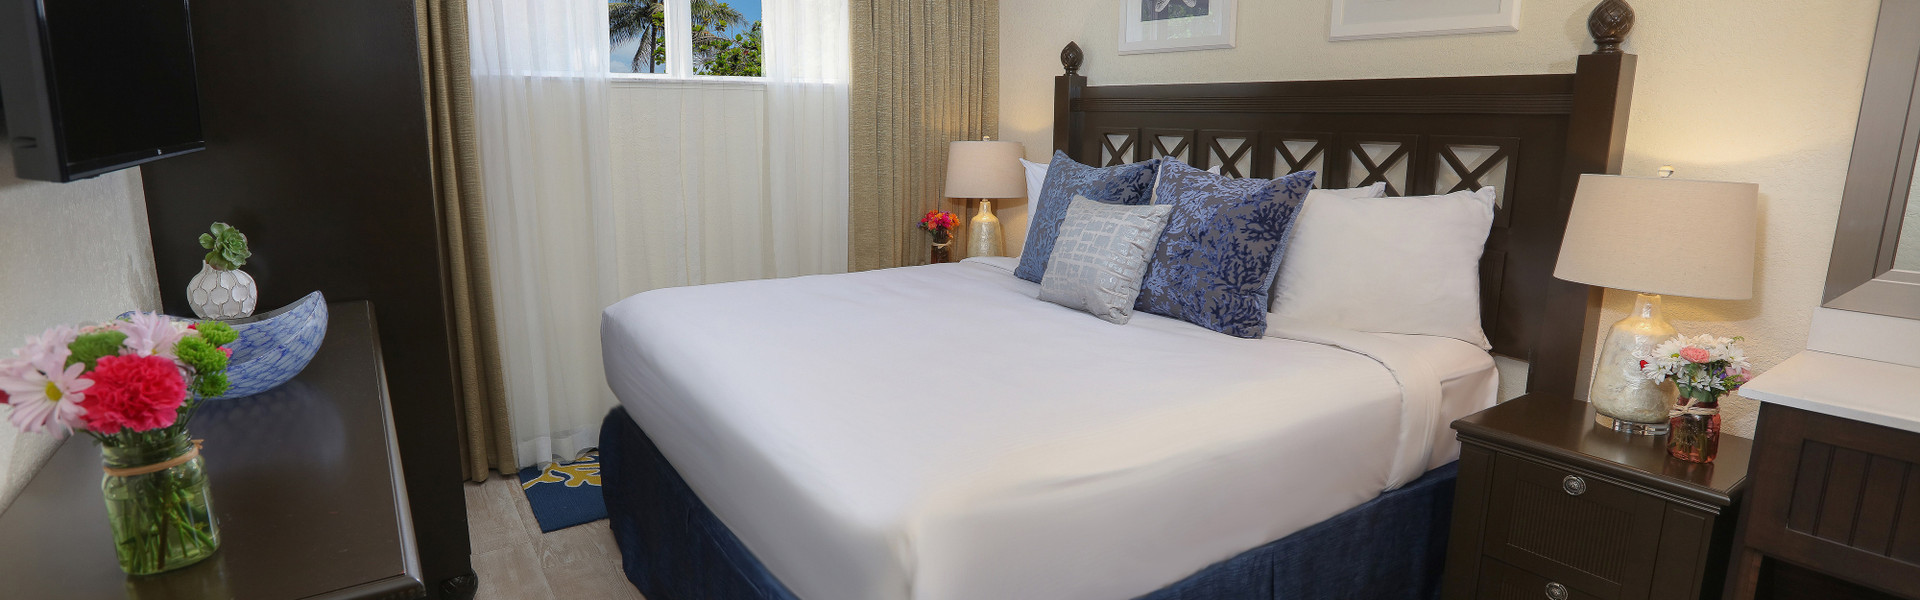 Hotel Room Blocks For Beach Weddings In Florida In Cocoa Beach | Luxury Two-Bedroom Suite